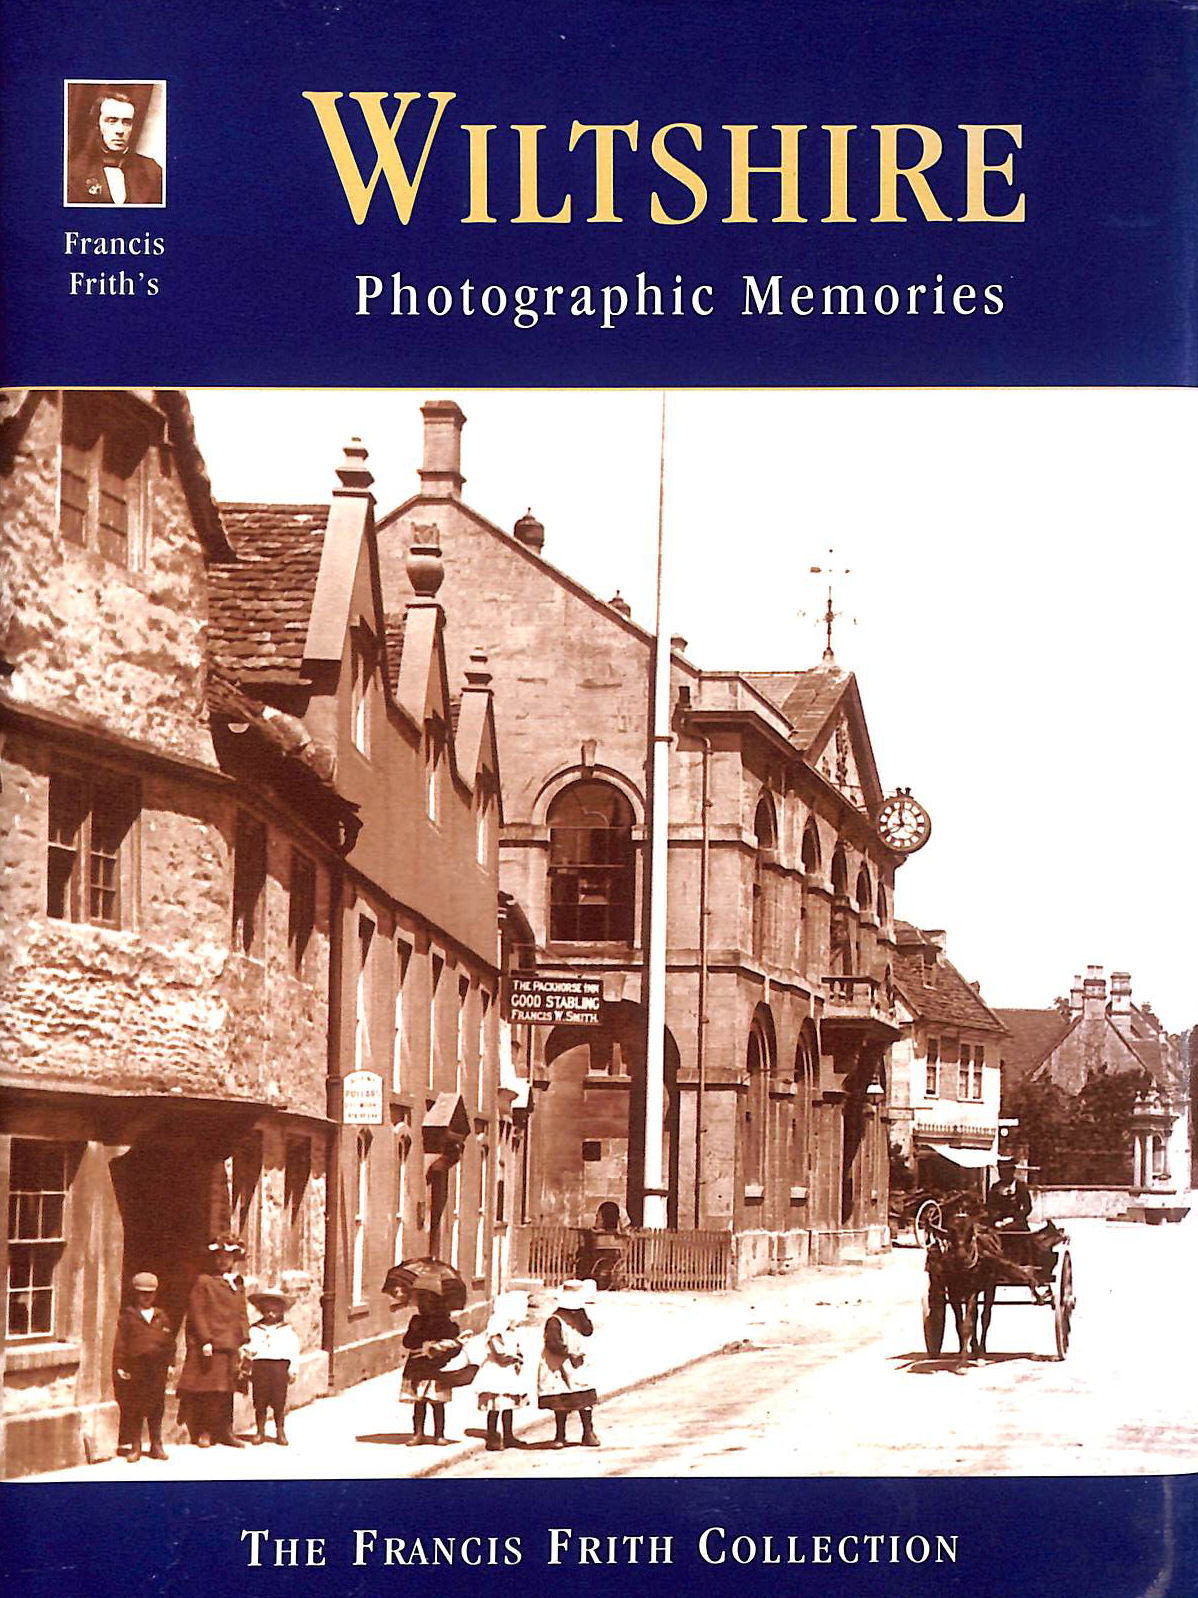 Image for Francis Frith'S Wiltshire (Photographic Memories)